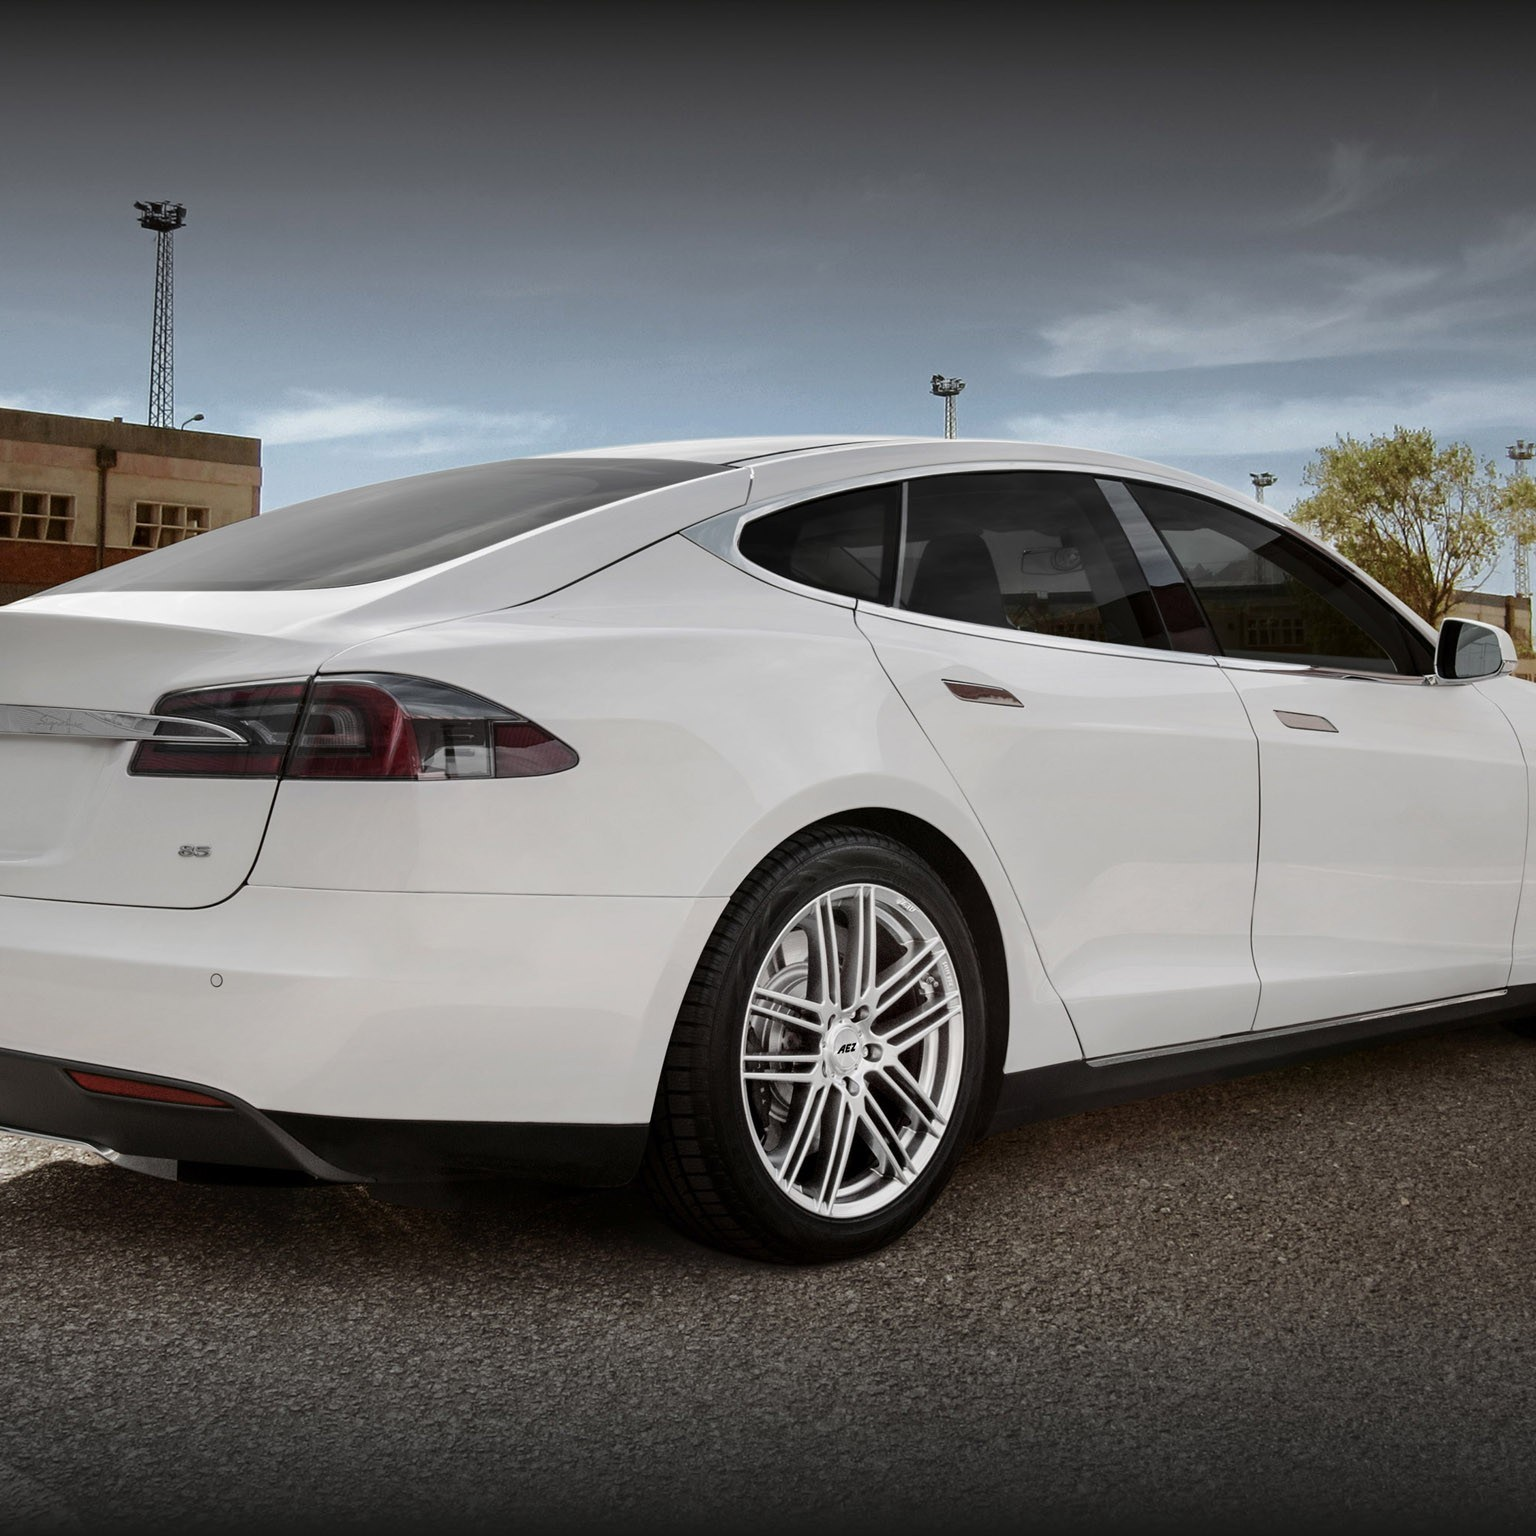 2014 Tesla Model S électrique - AEZ Cliff